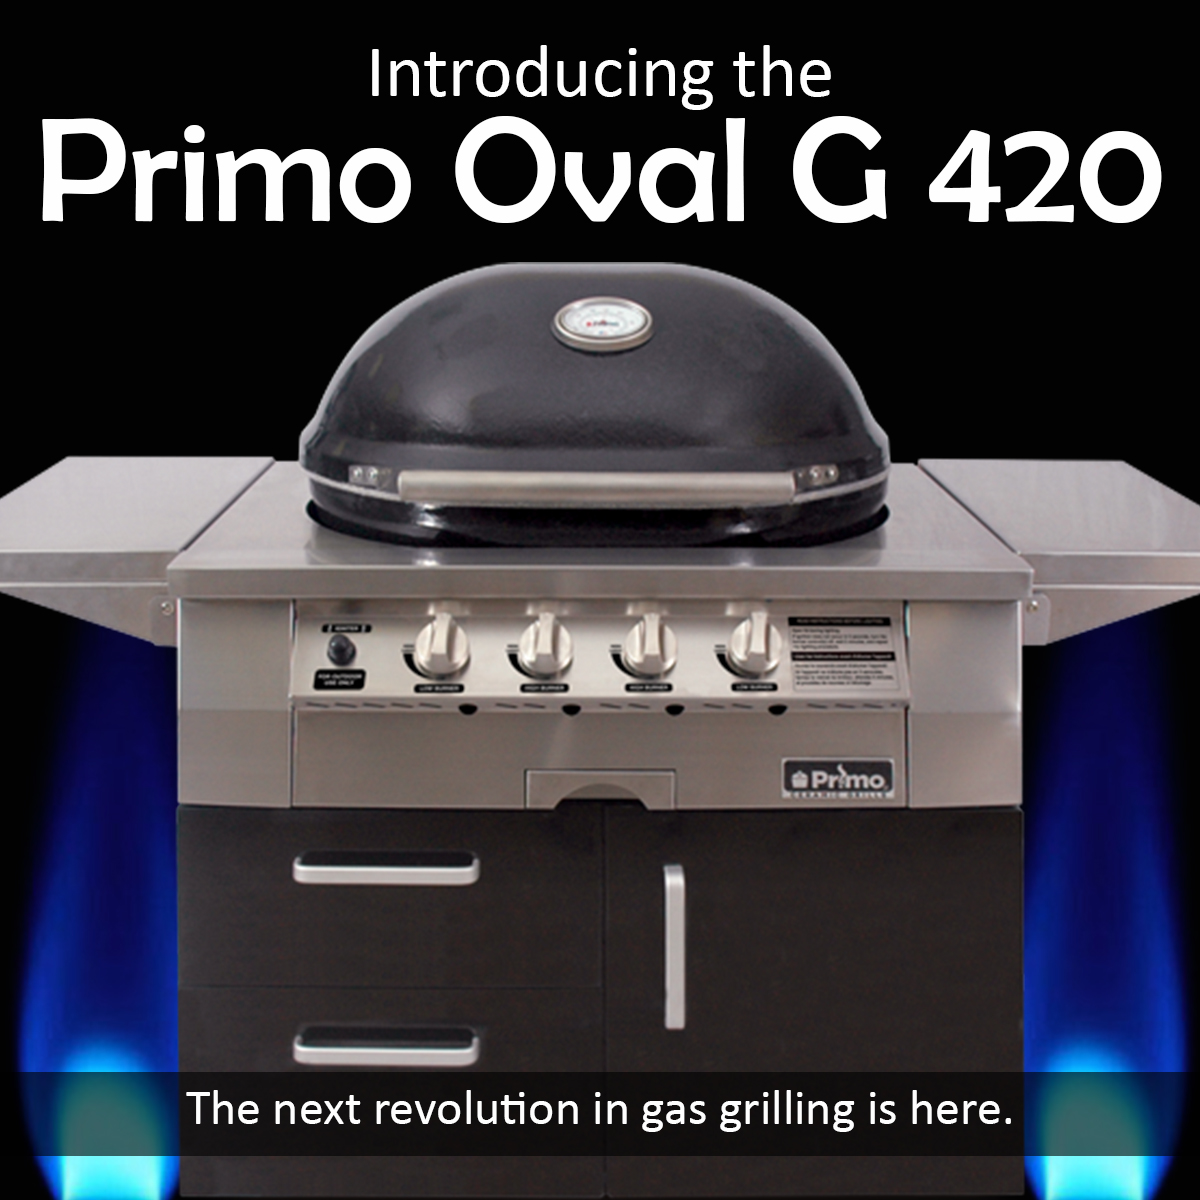 NEW Primo Oval G 420